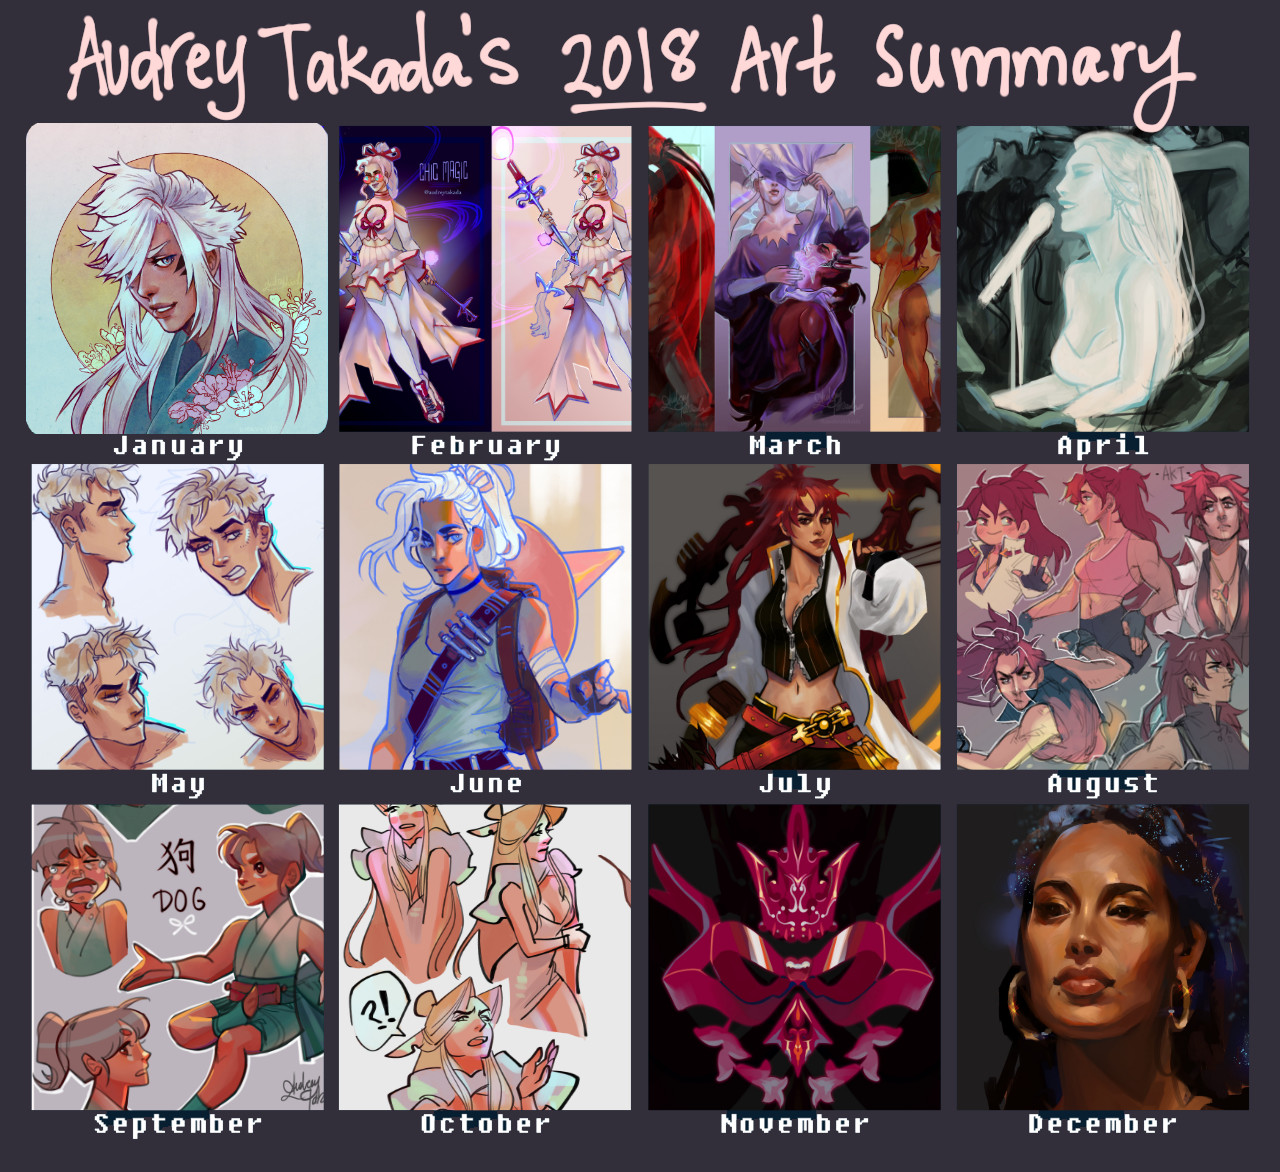 A summary of my art for 2018